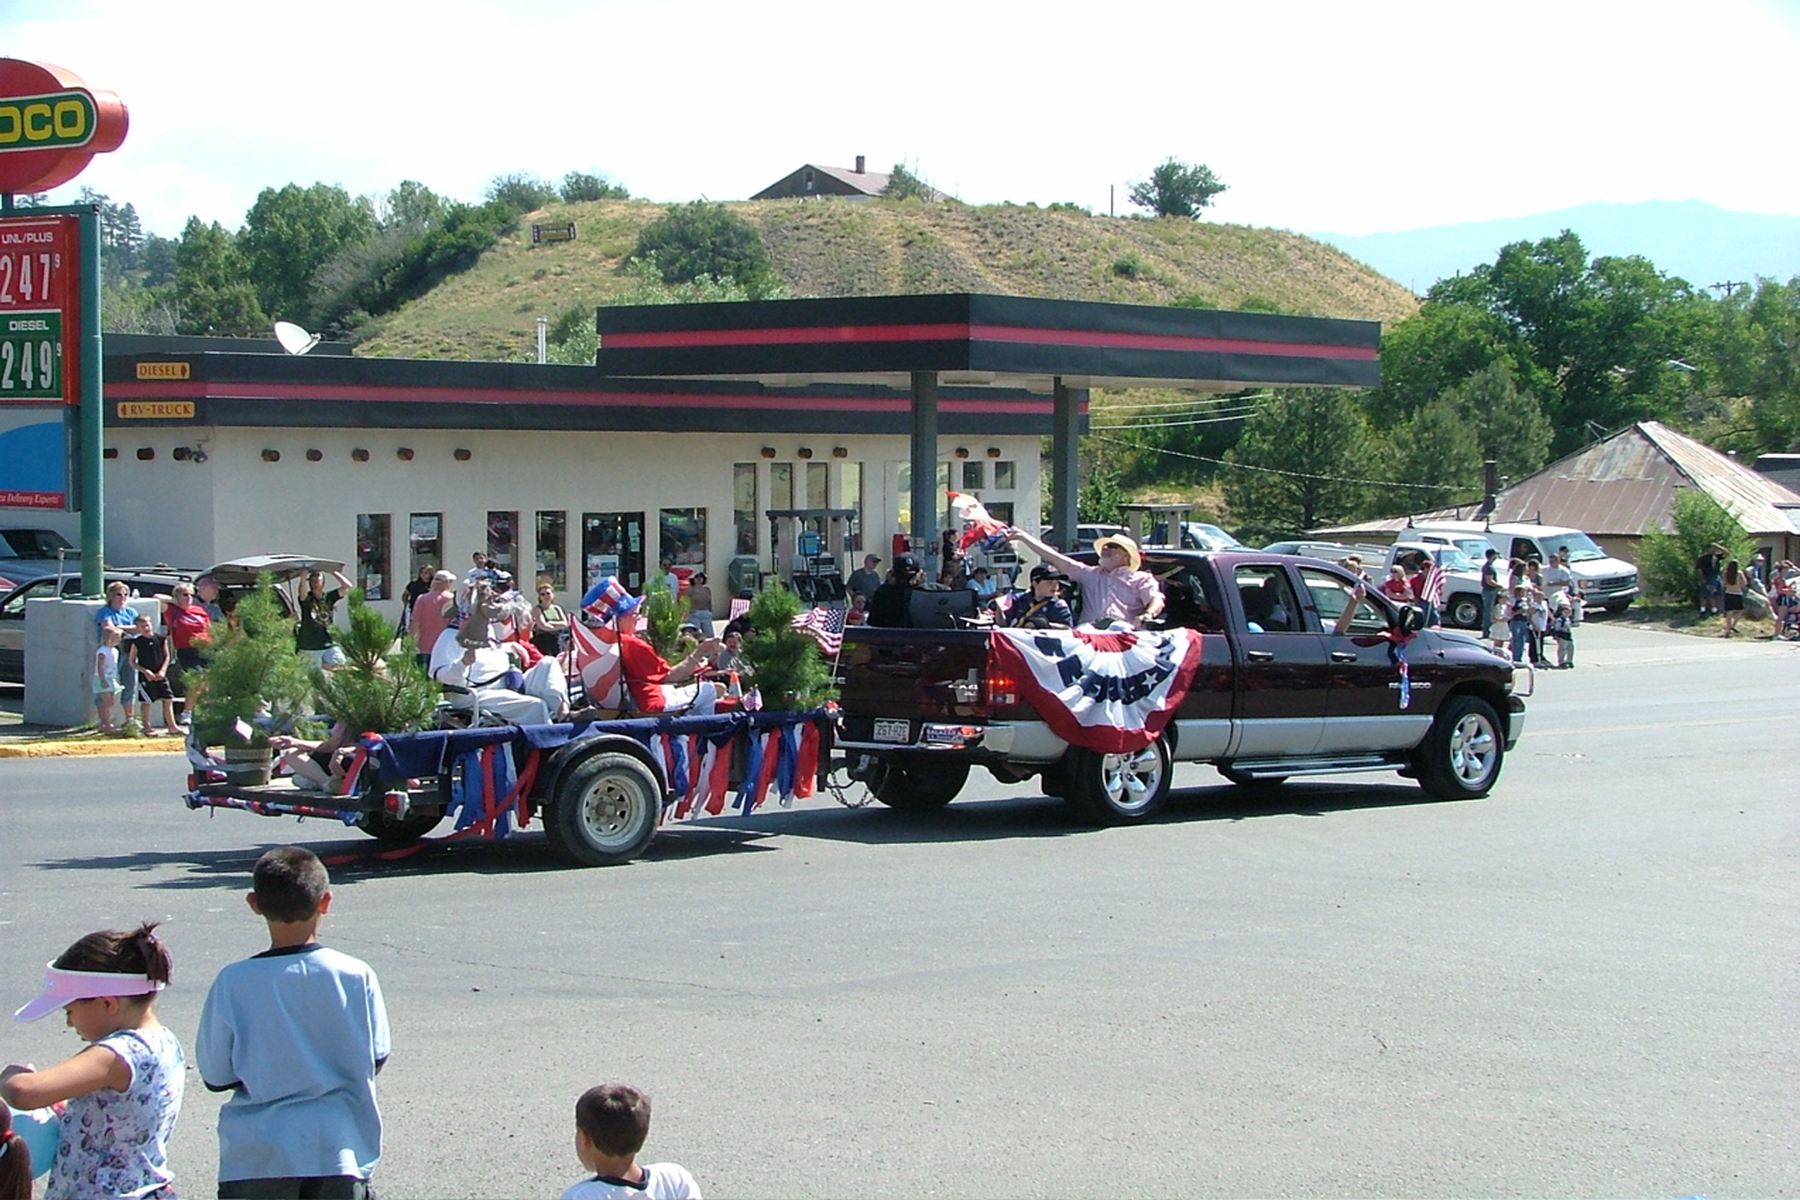 The Red Ryder Roundup Parade in Pagosa Springs, Colorado. The Red Ryder Roundup has featured a rodeo, dance, parade, carnival, and fireworks every Fourth of July since 1953.